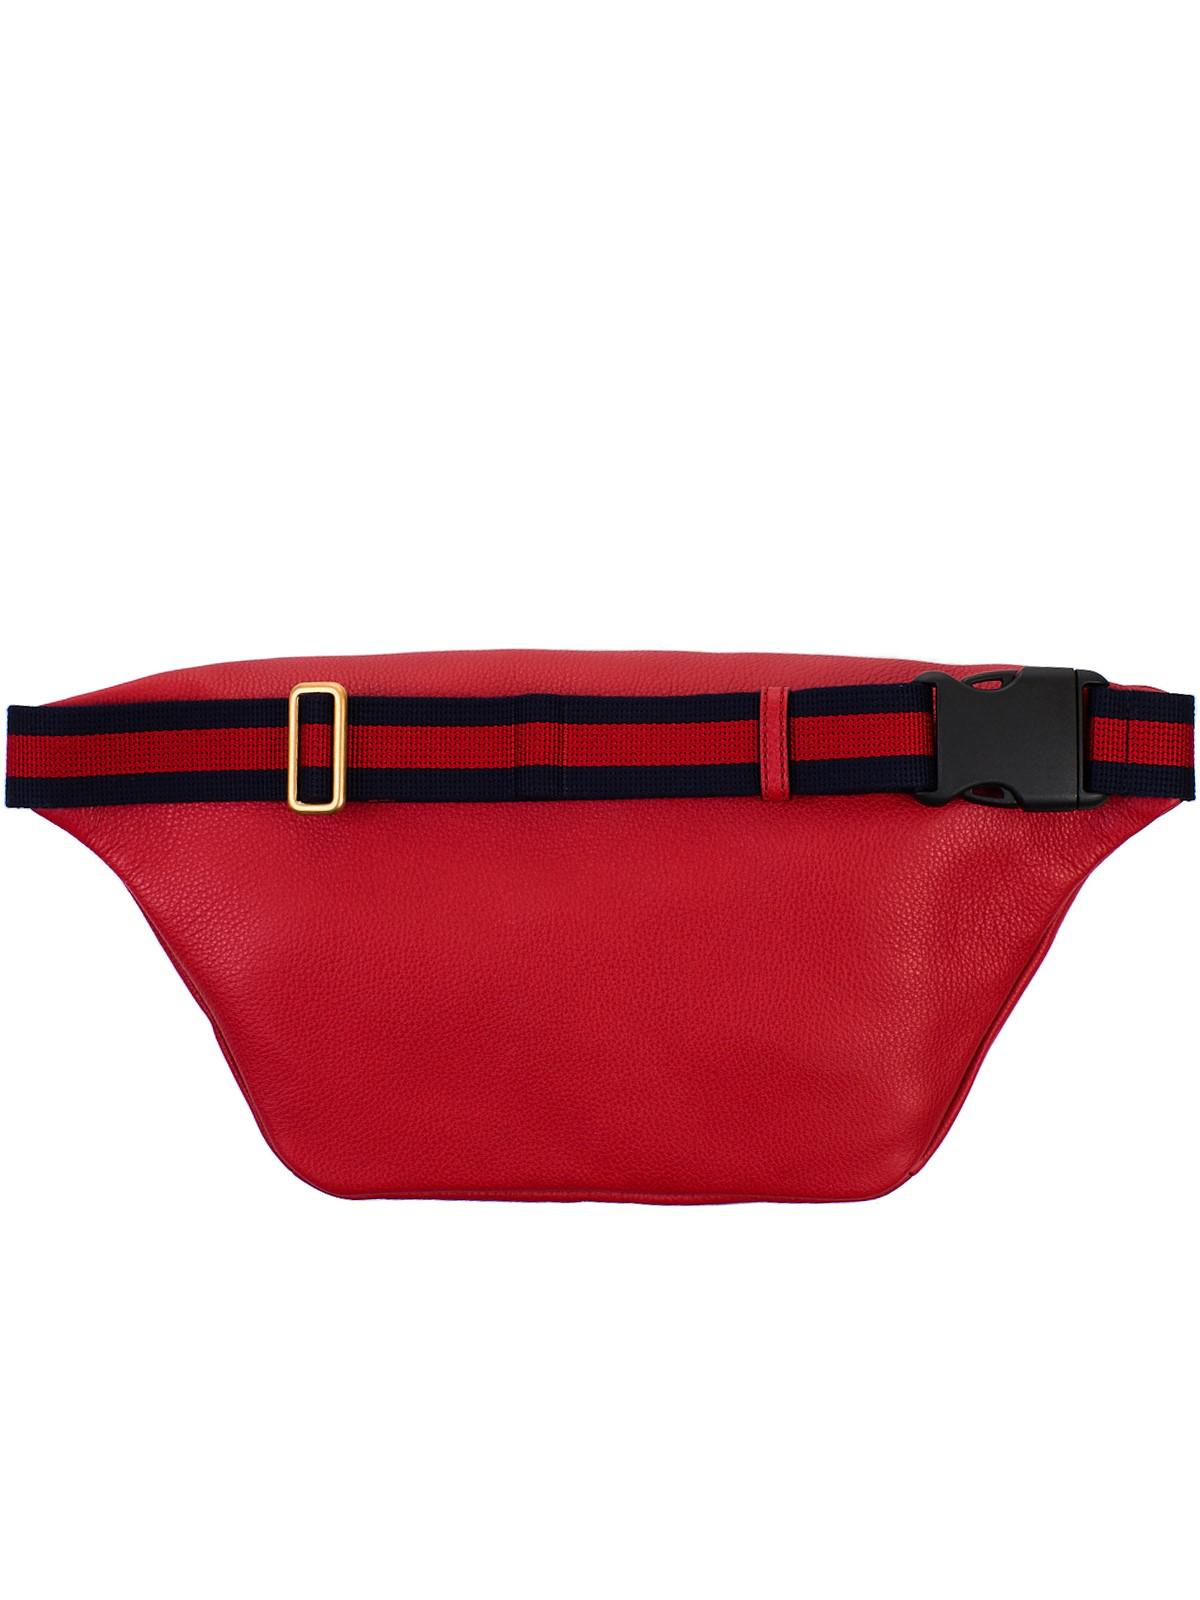 8c91dbf8d45a9d Gucci Red Fanny Pack in Red - Lyst